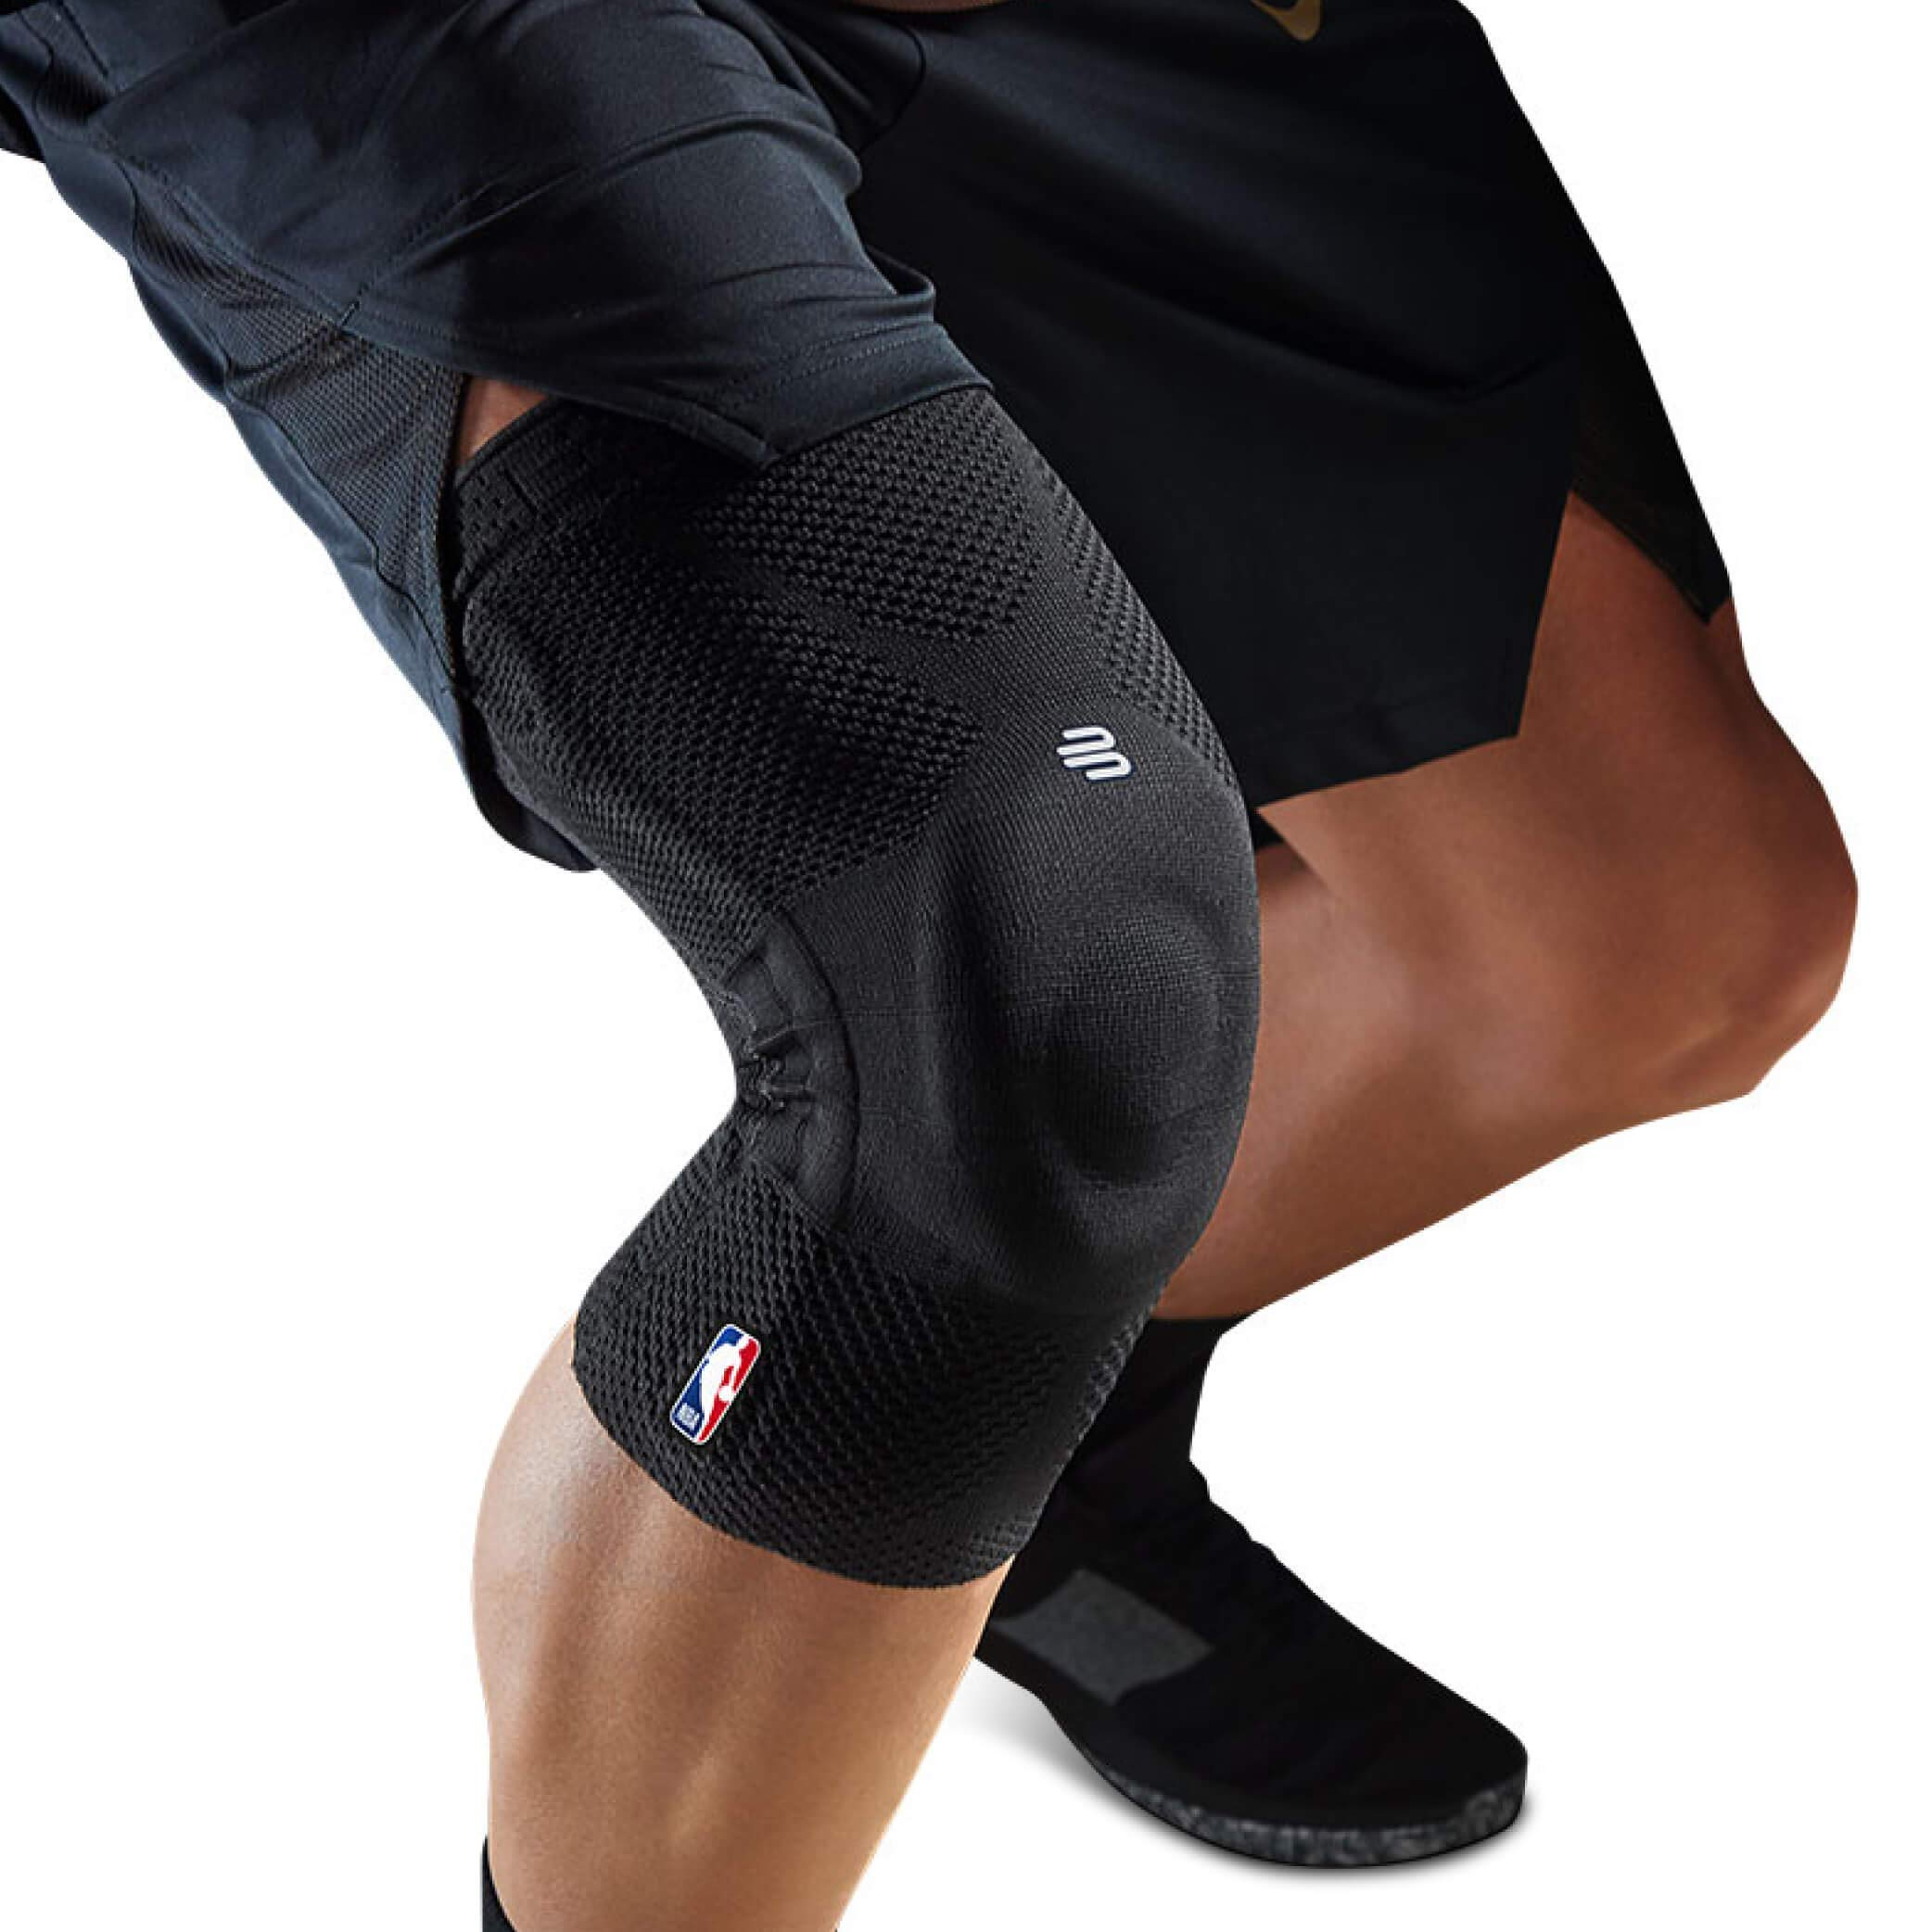 Bauerfeind GenuTrain NBA Knee Brace - Basketball Support with Medical Compression - Sleeve Design with Patella Pad Gel Ring for Pain Relief & Stabilization (Black, XXL) by Bauerfeind (Image #1)